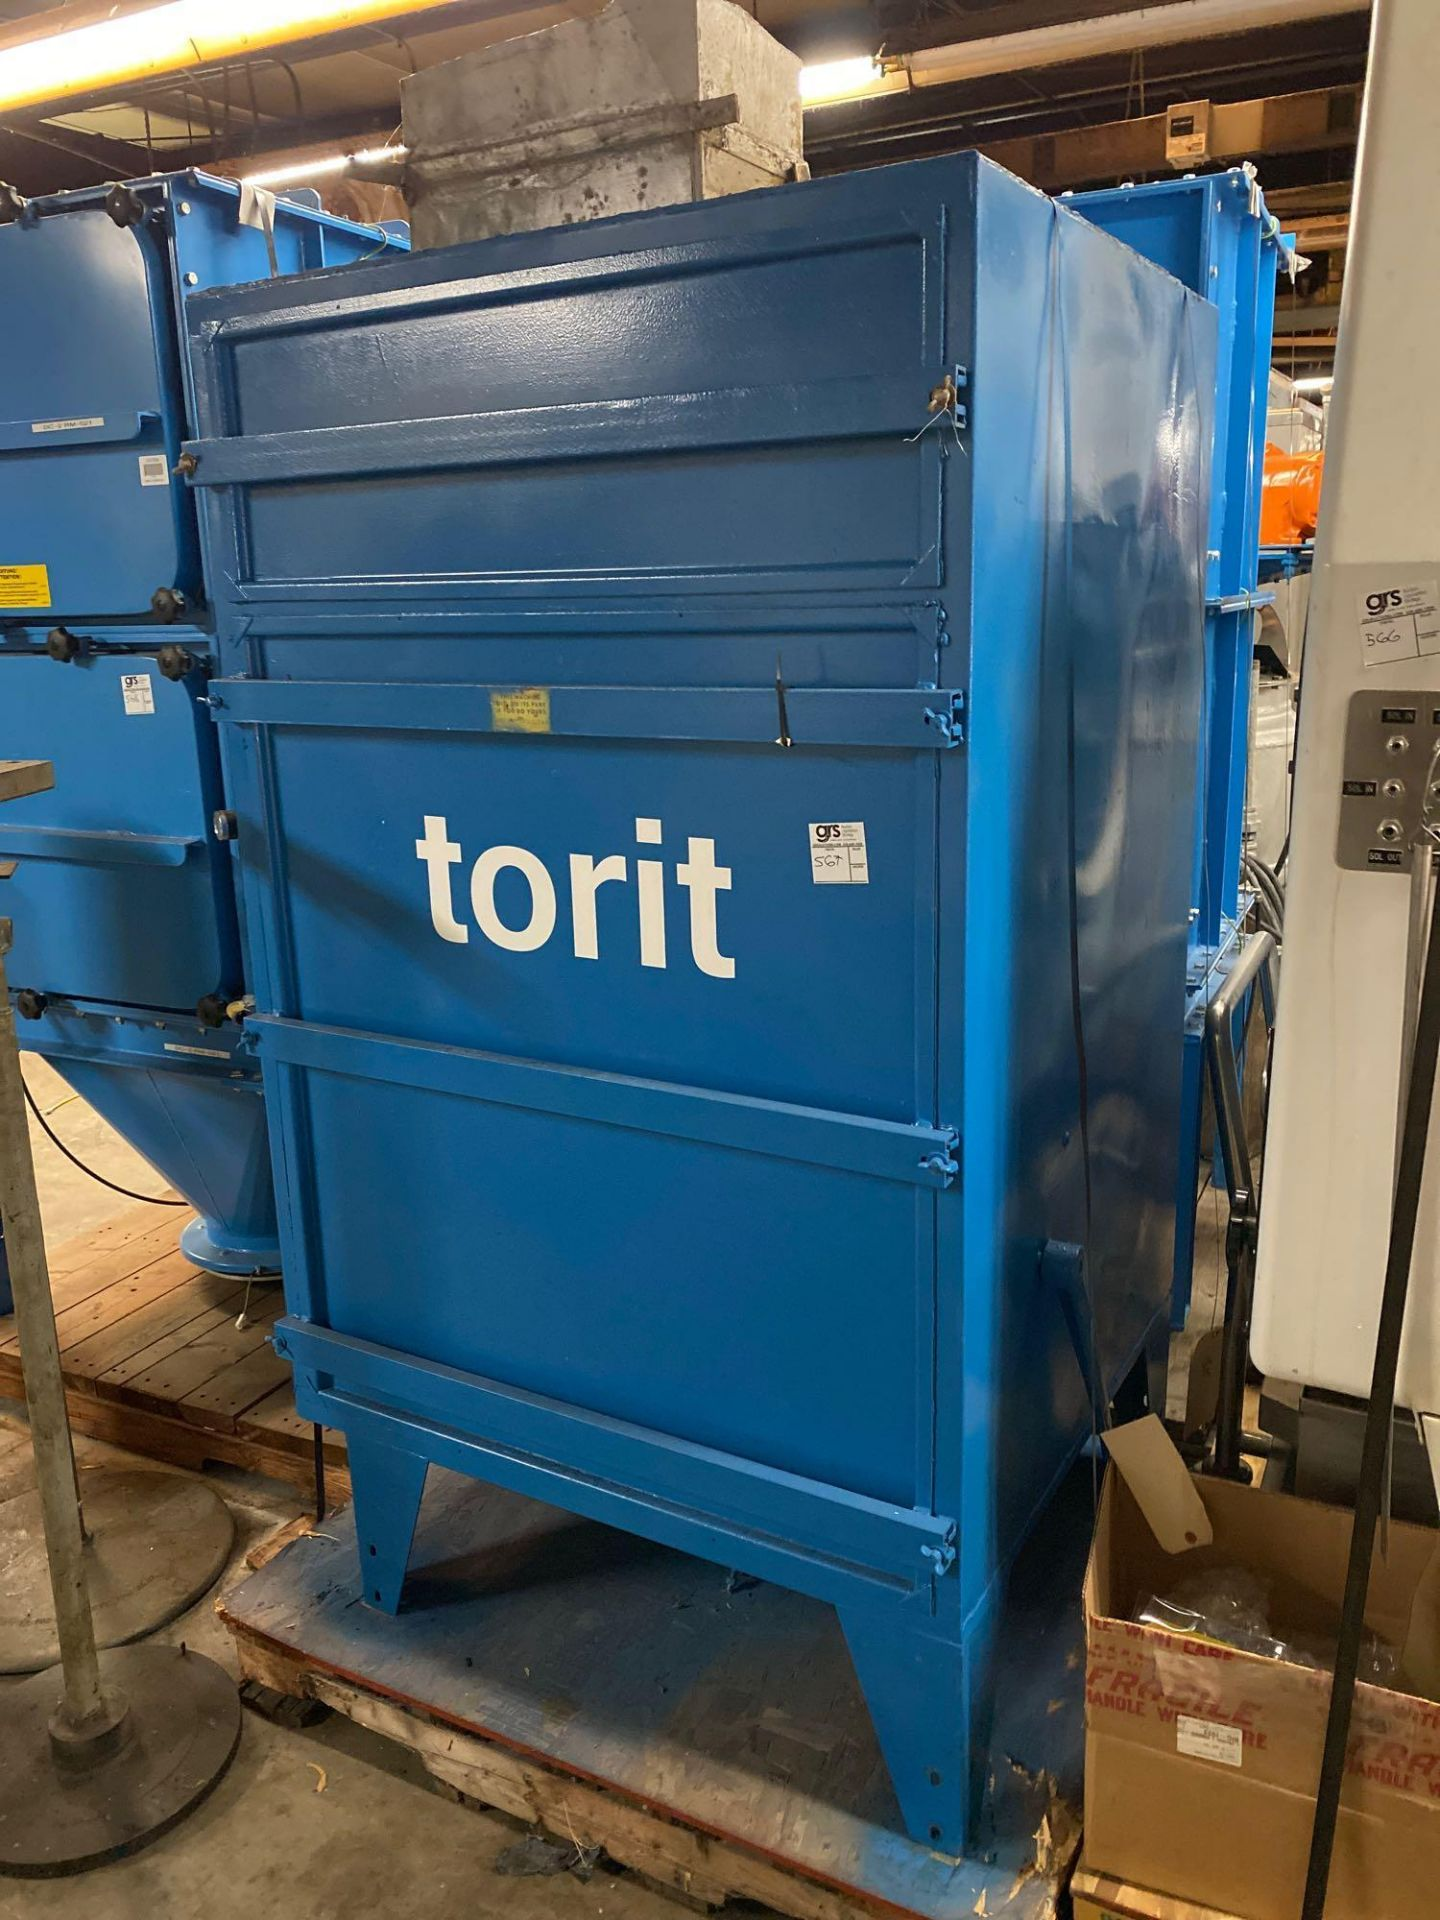 Torit Dust Collector Cabinet - Image 3 of 4